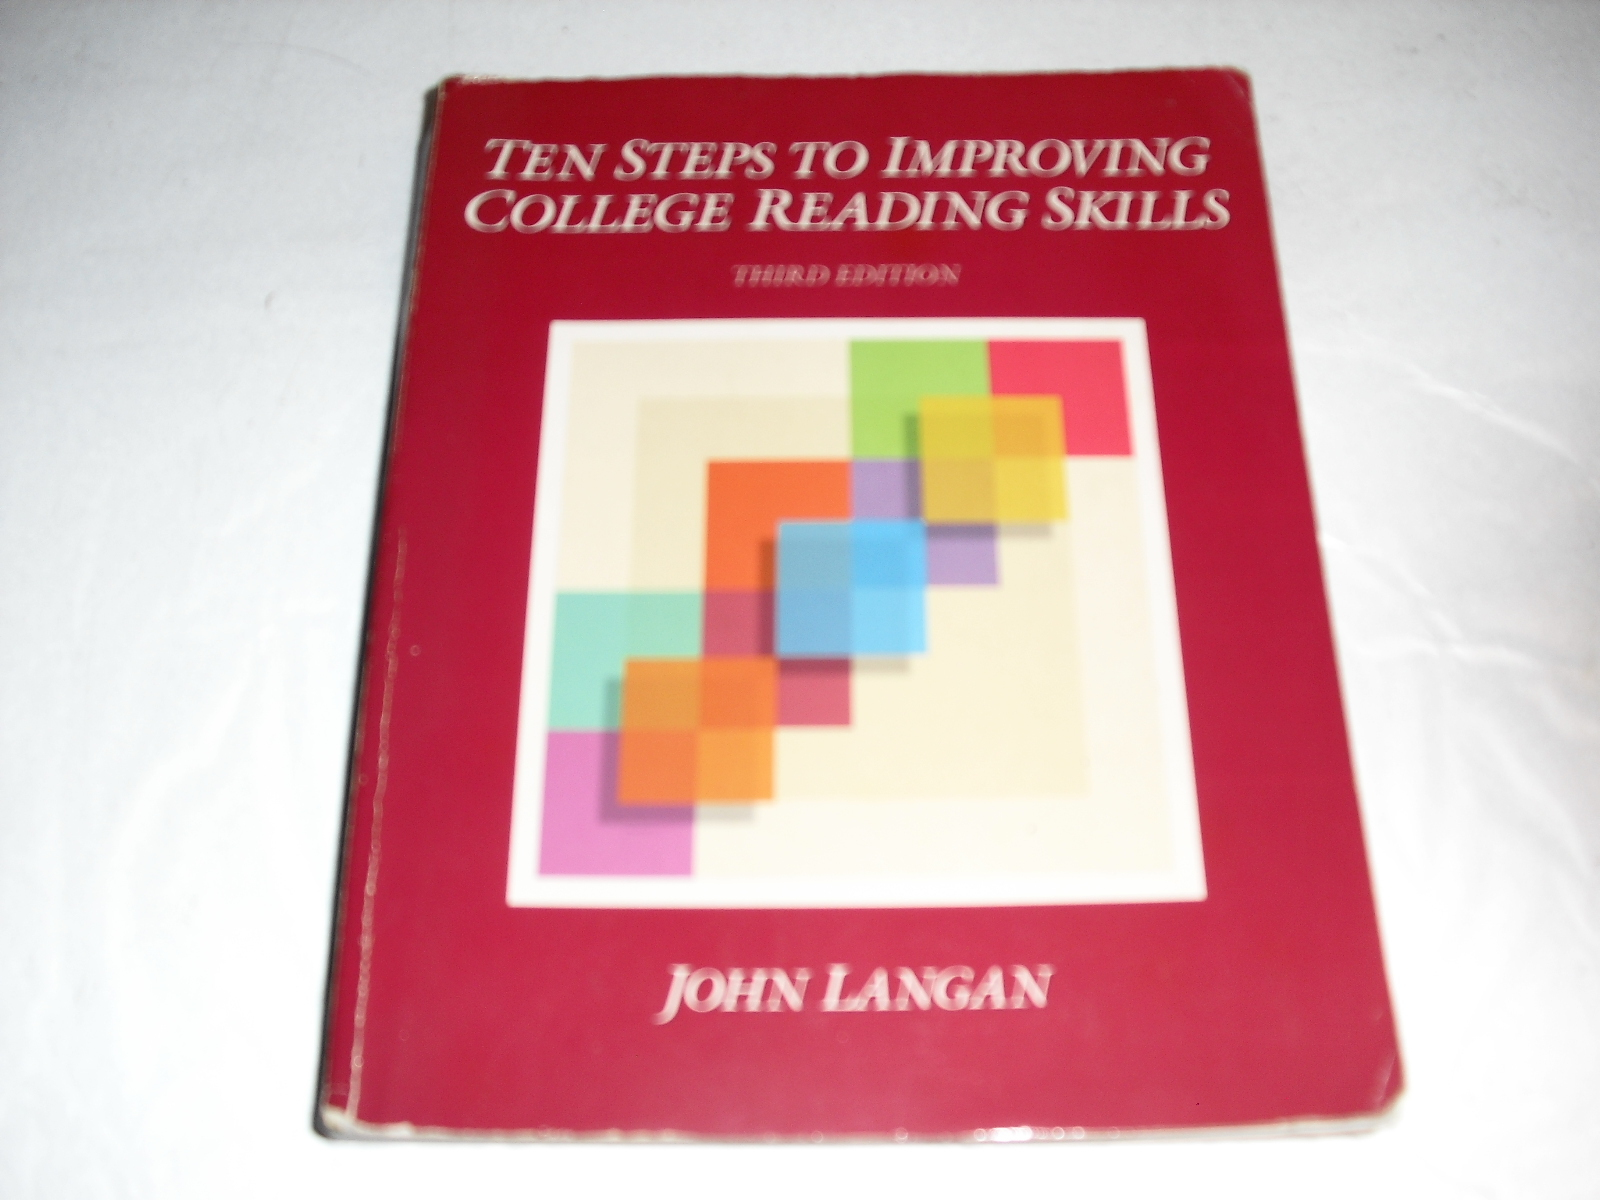 ten  steps  to  improving  college  reading  skills